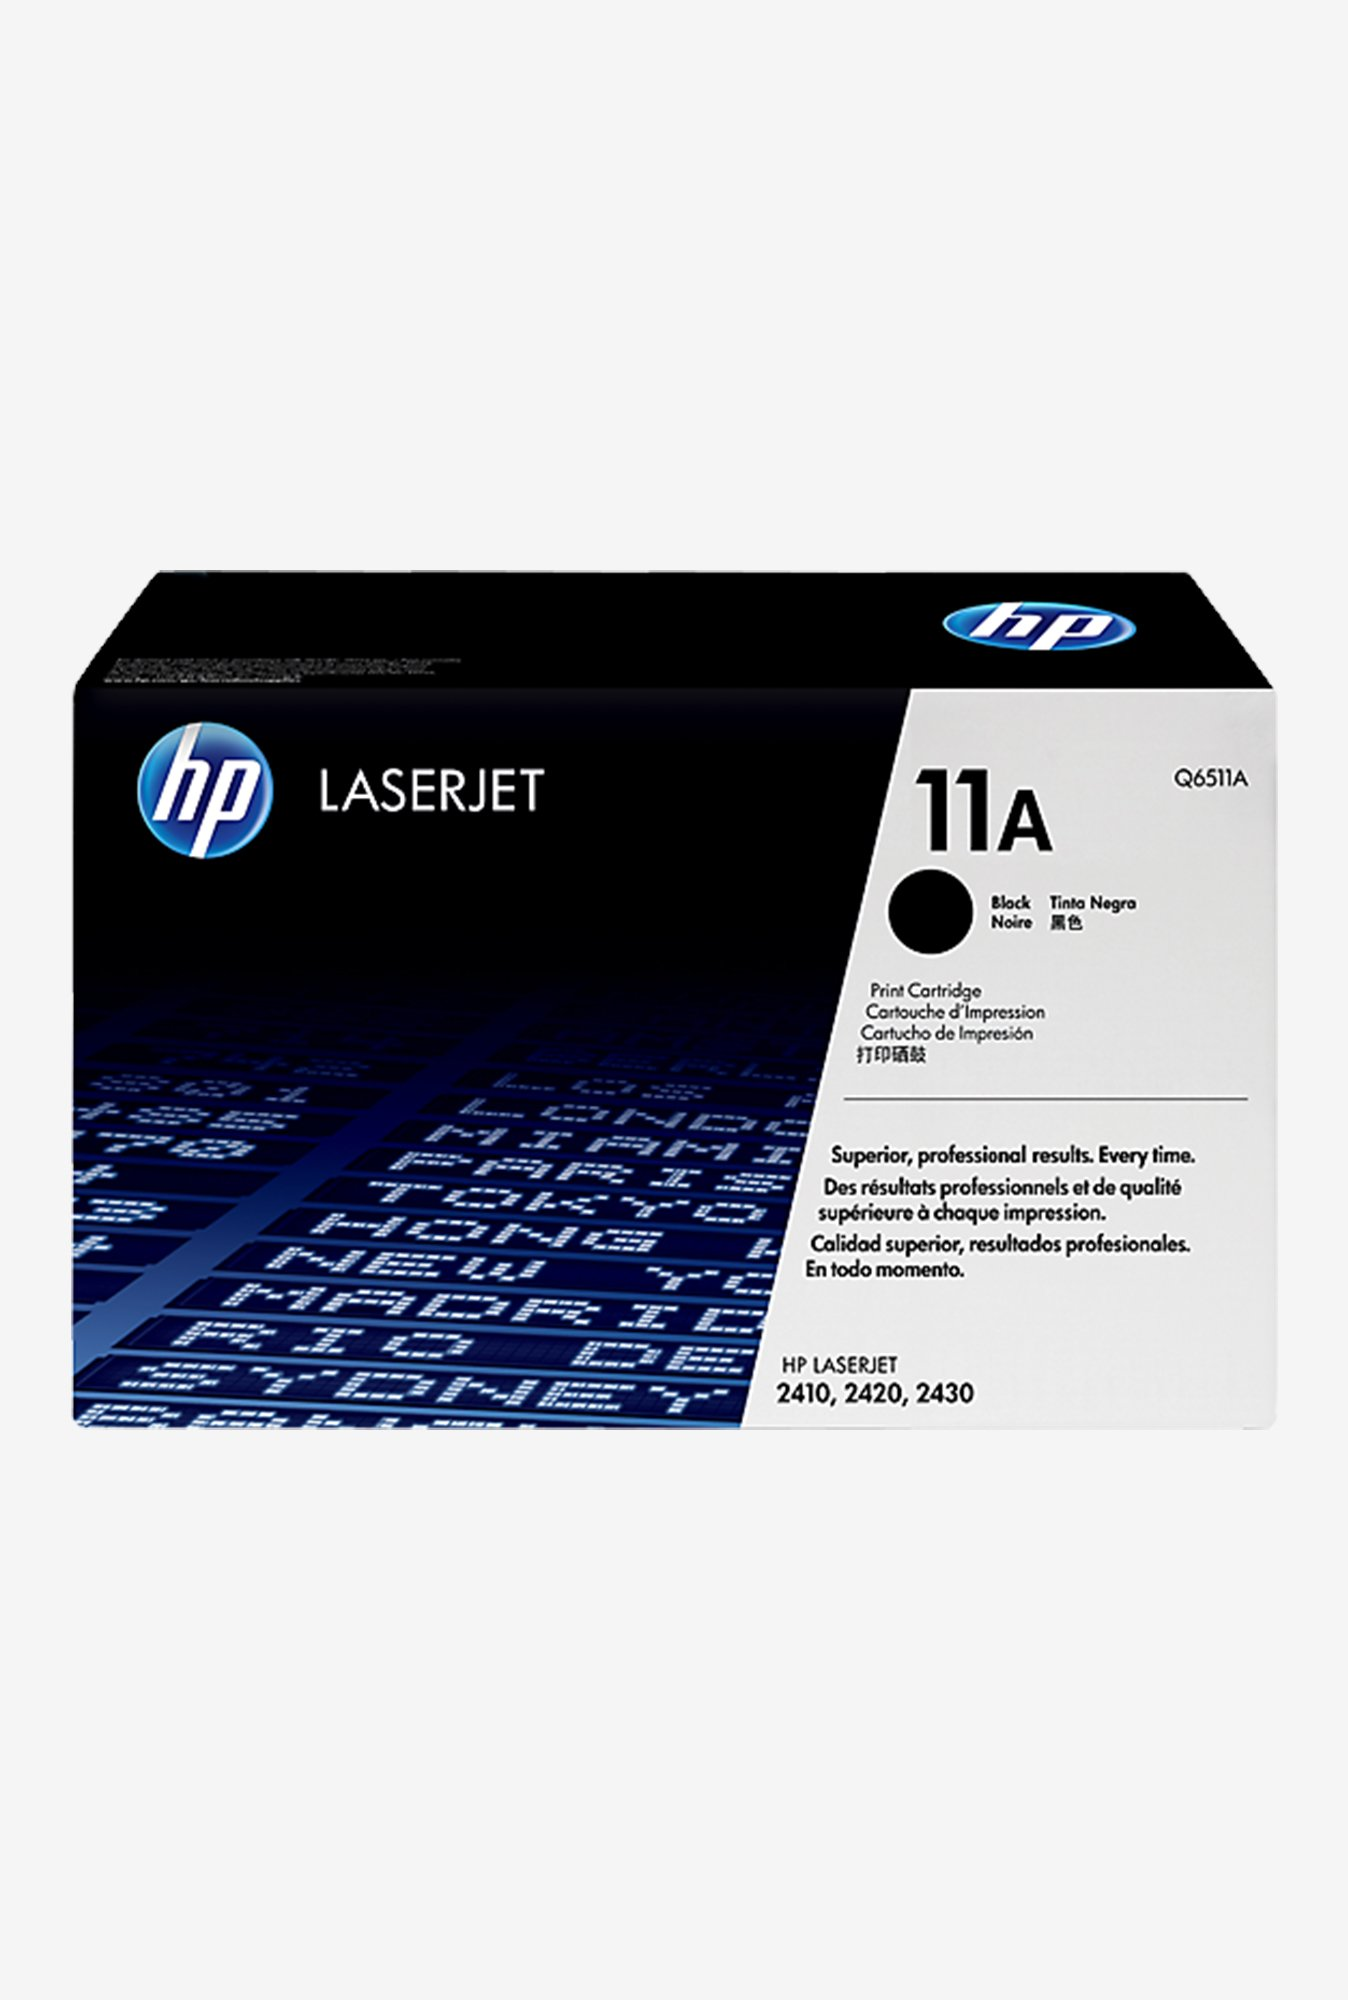 HP 11A LaserJet Q6511A Toner Cartridge Black